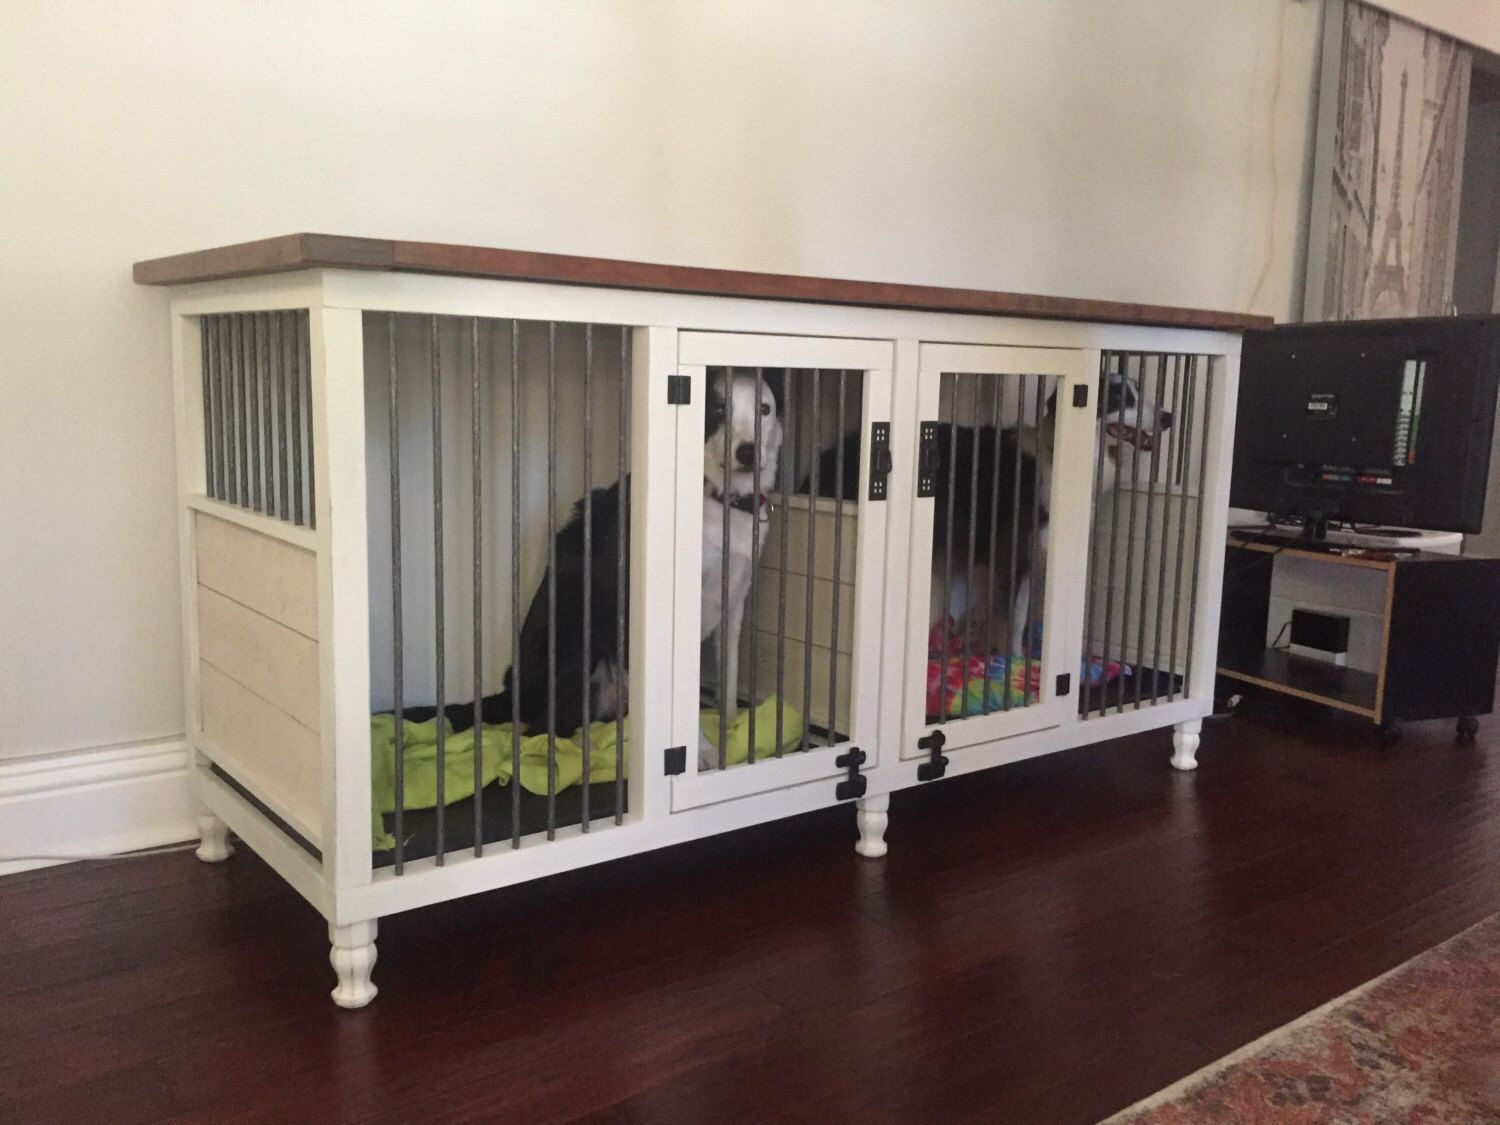 homemade dog kennels 2. Dog Kennel, 2 Dogs, Condo, House, Box, Bed, Solid Hardwood, Metal, Handmade, Custom Sizes Available By ArtsyReclaimed On Etsy Homemade Kennels O